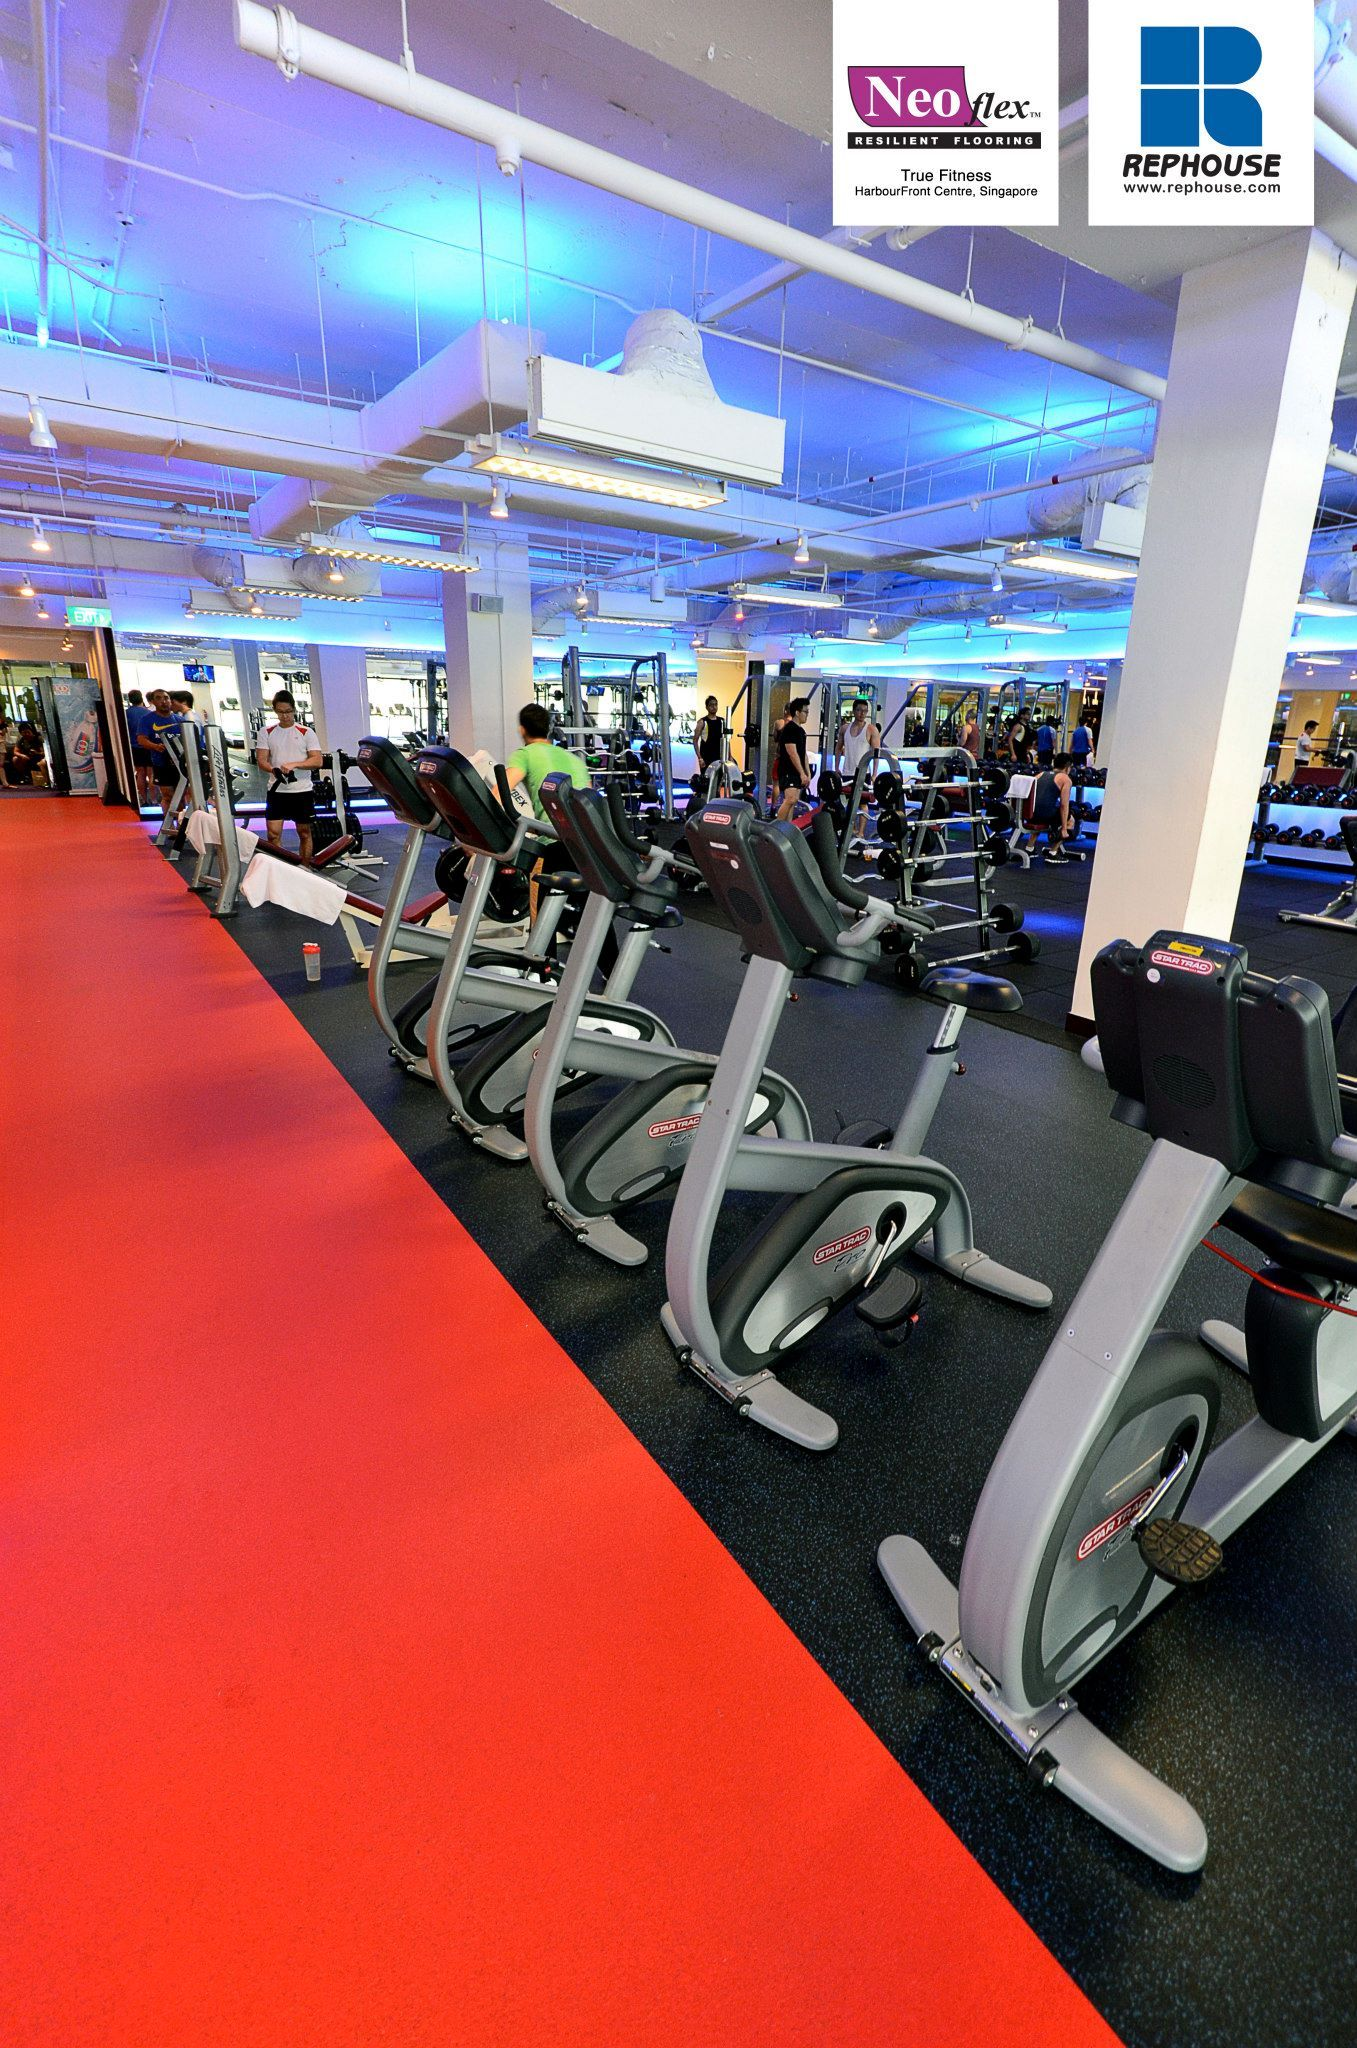 Neoflex 800 Series Rubber Fitness Flooring True Fitness